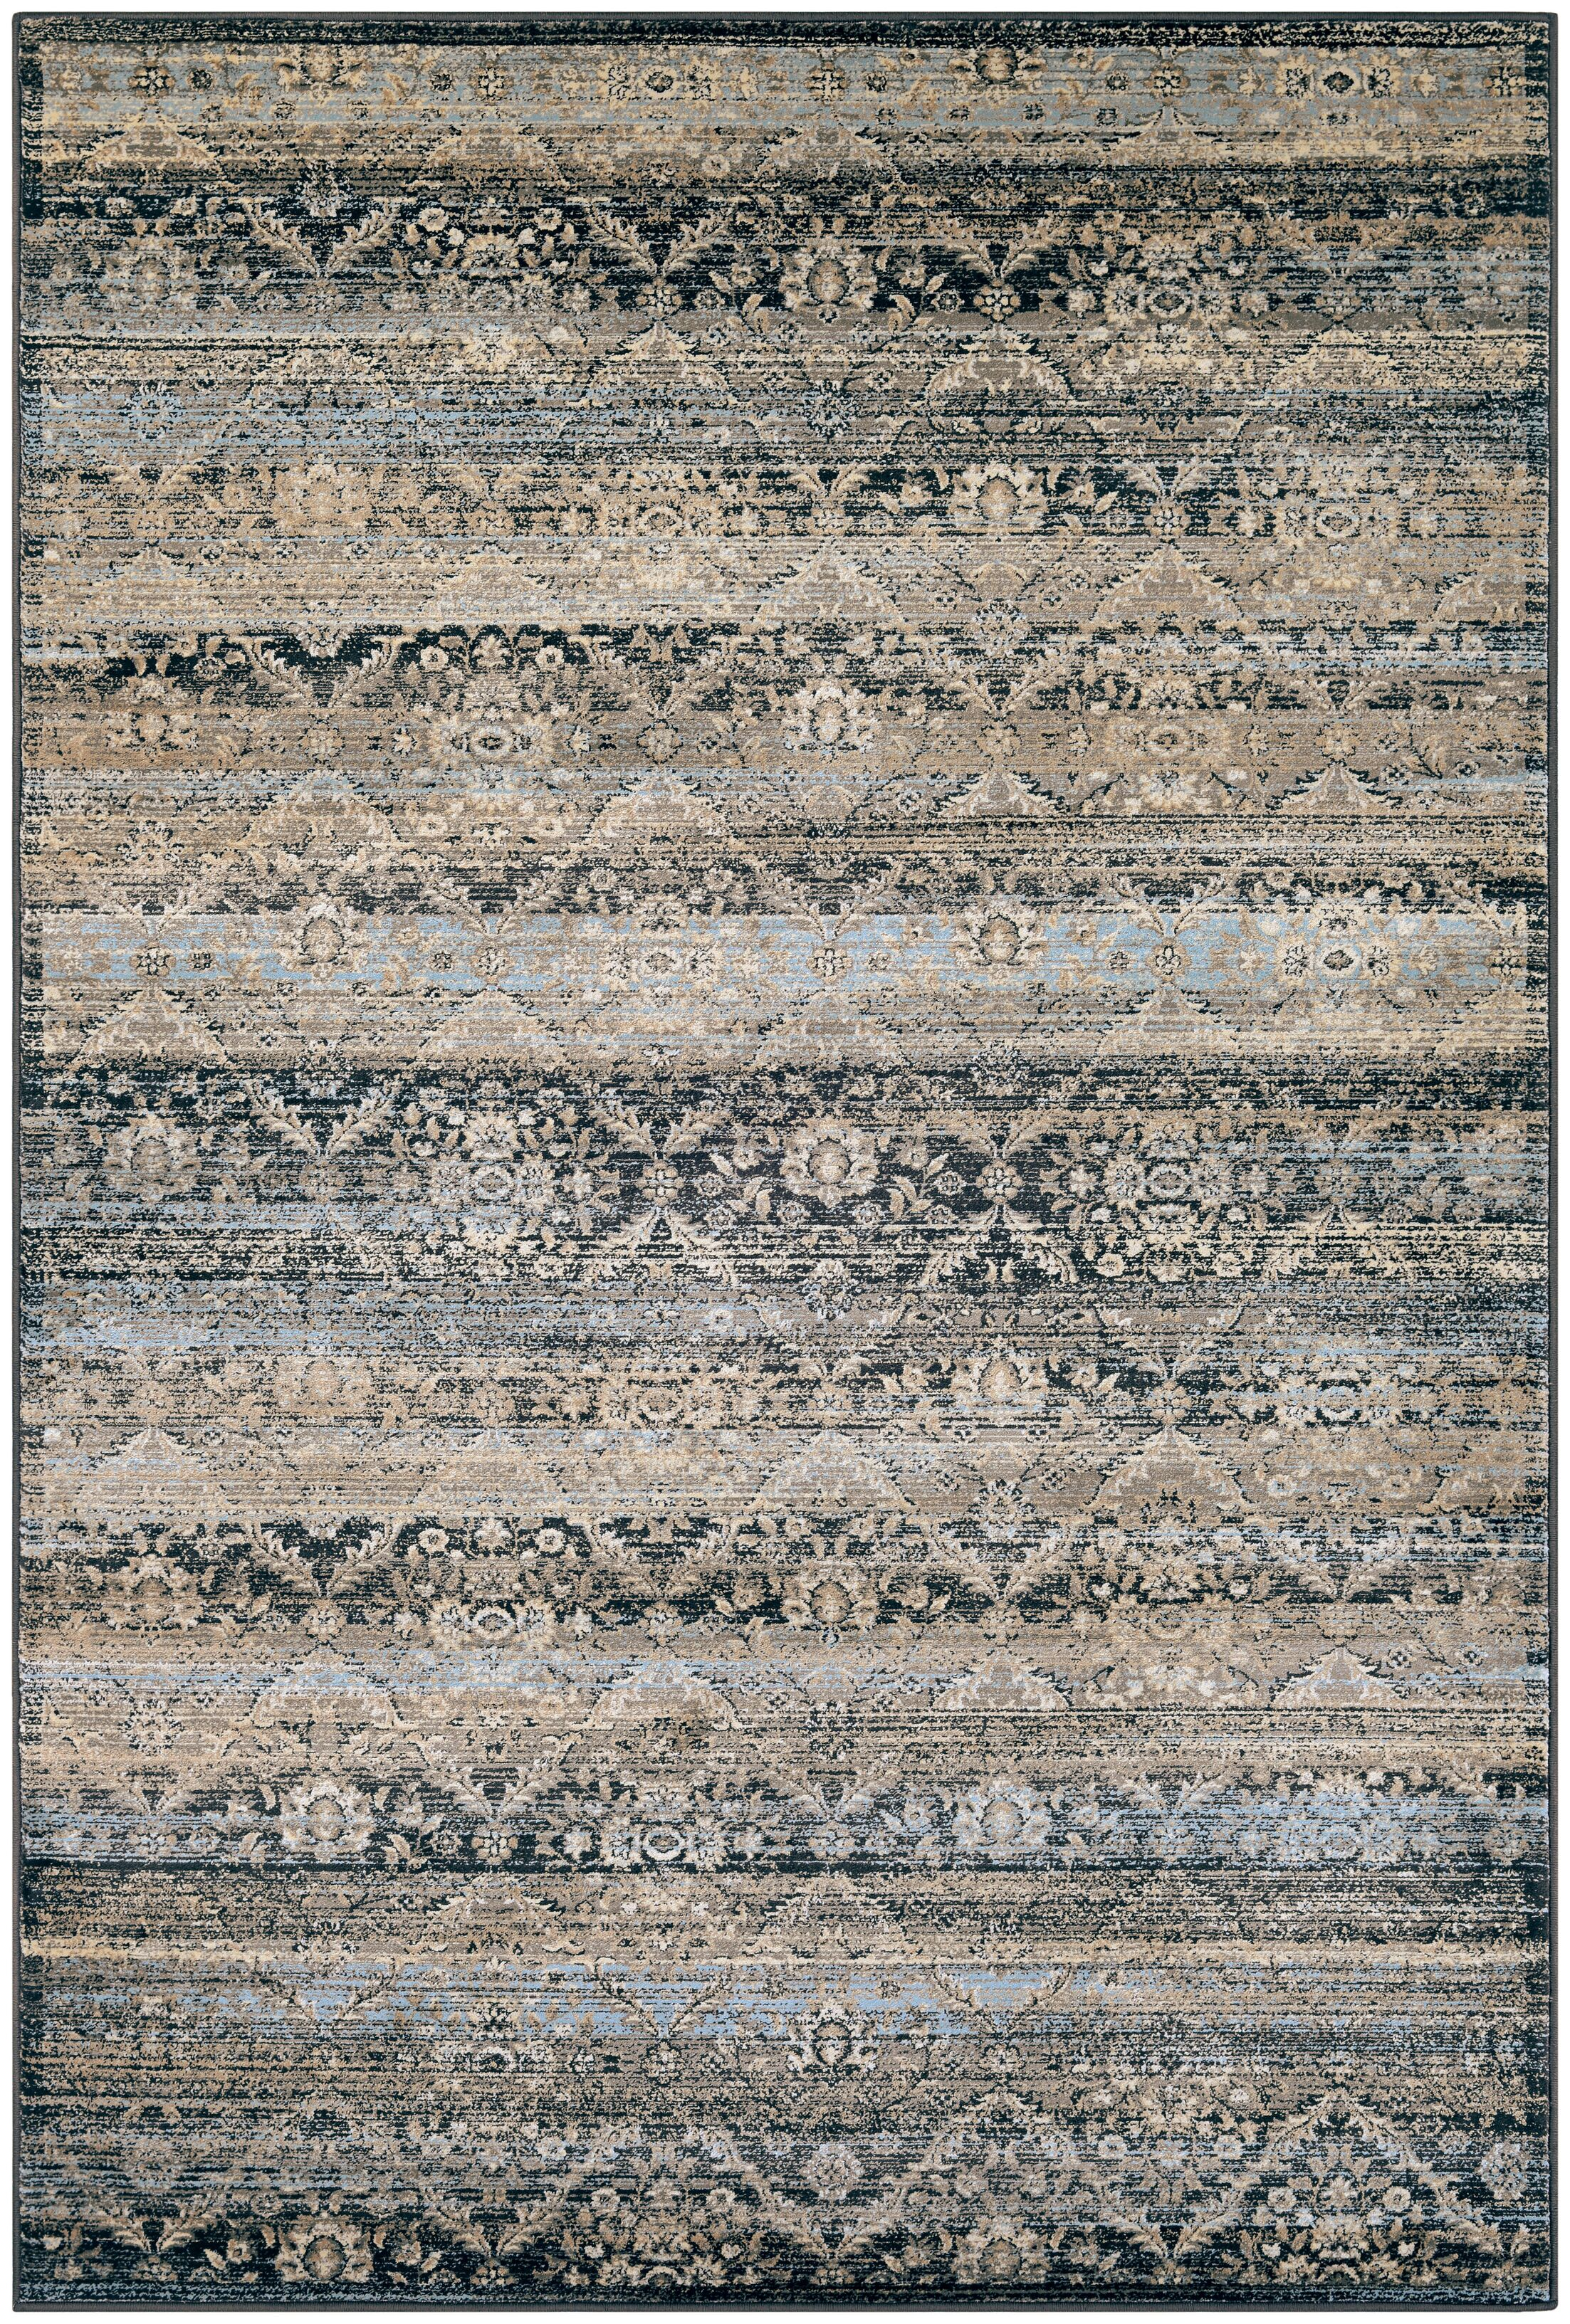 Saramarie Black/Brown Area Rug Rug Size: Rectangle 2' x 3'7